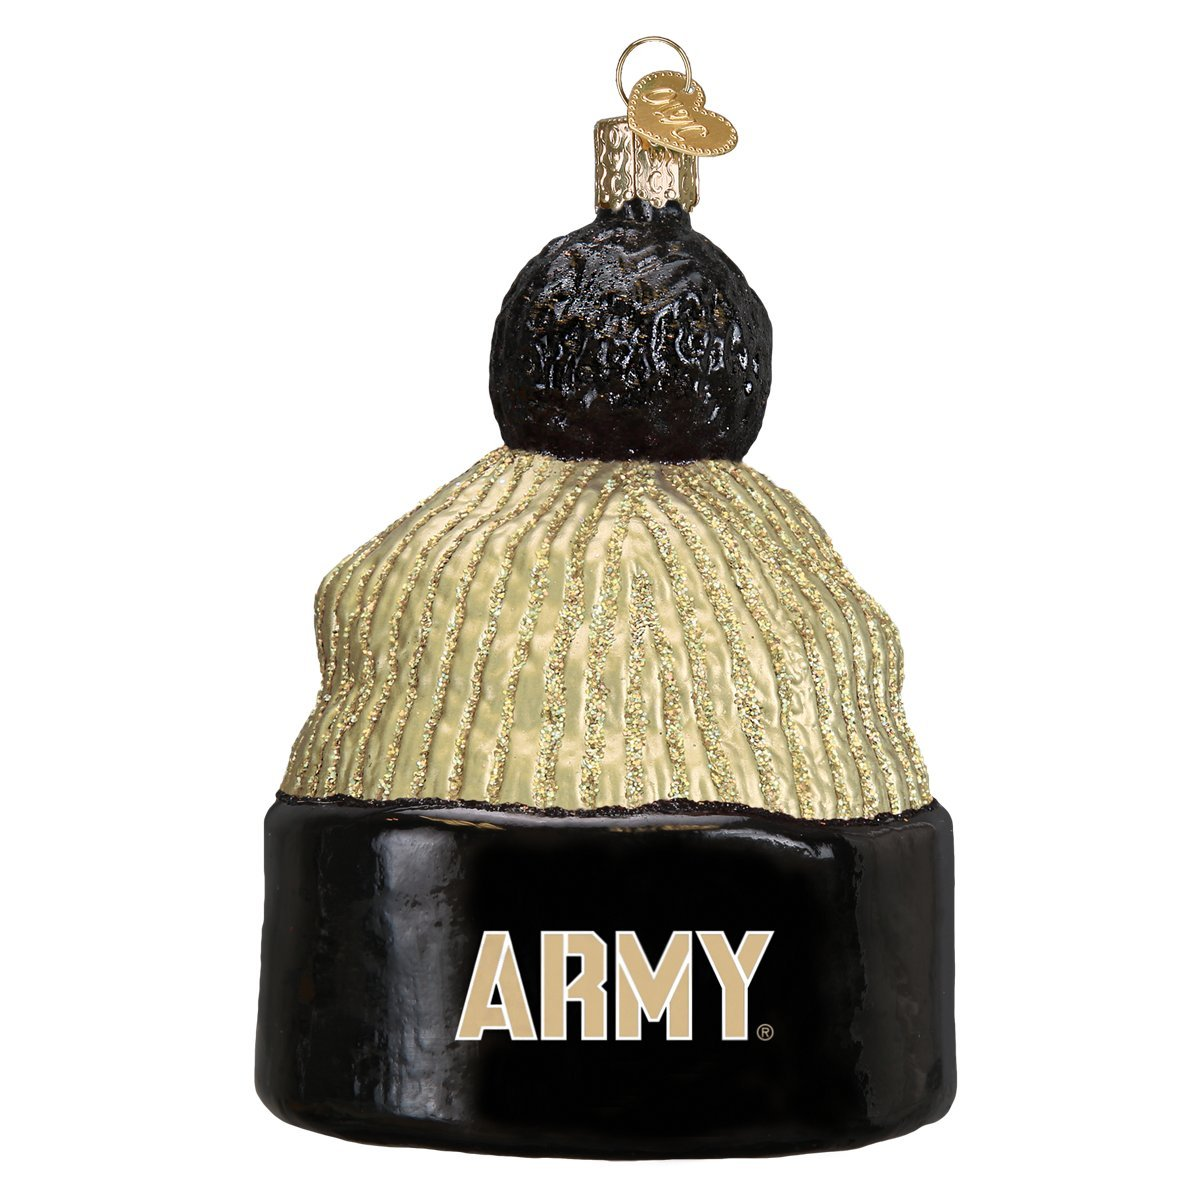 Old World Christmas Ornaments: Army Beanie Glass Blown Ornaments for Christmas Tree 64914